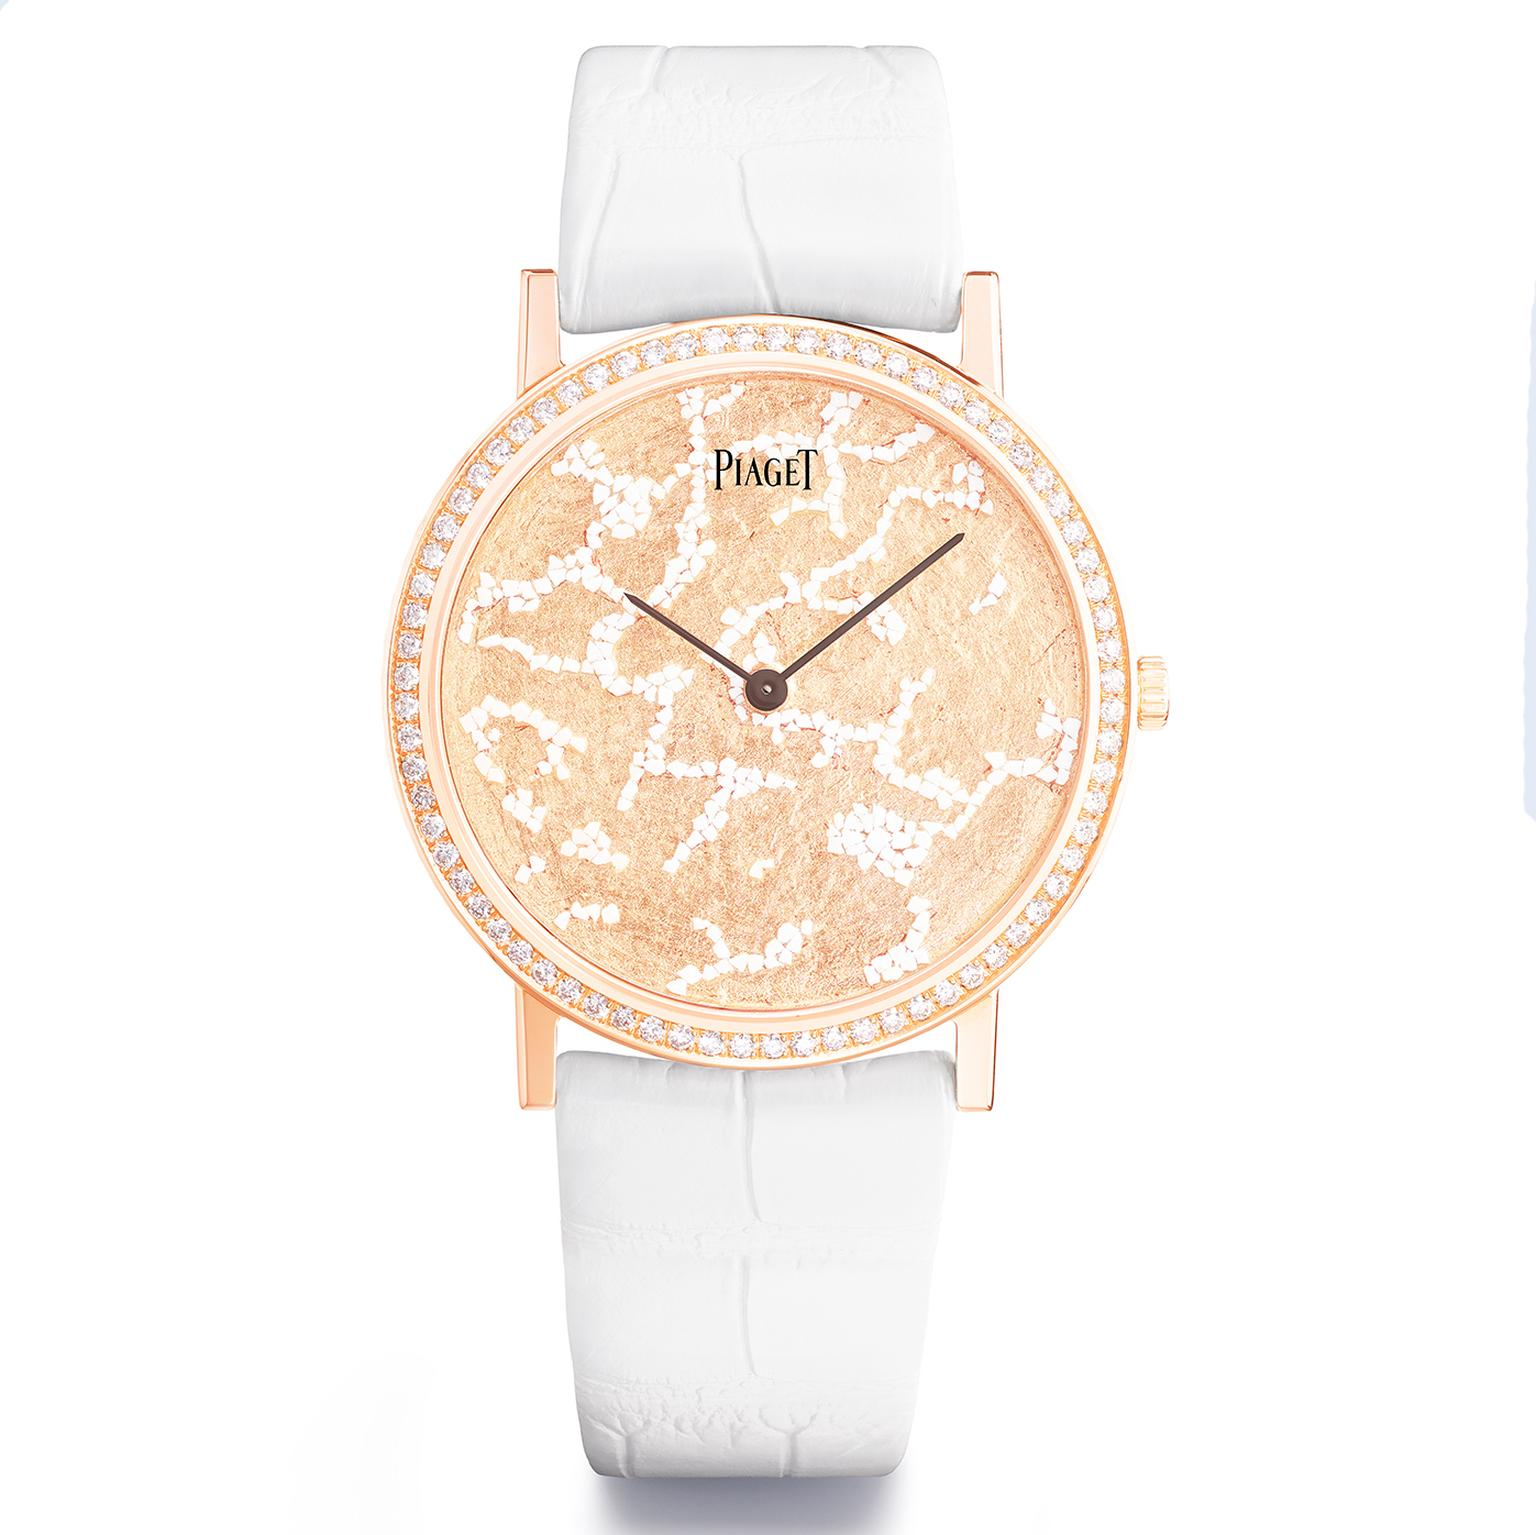 Piaget Altiplano Schiuma d'Oro jewellery watch